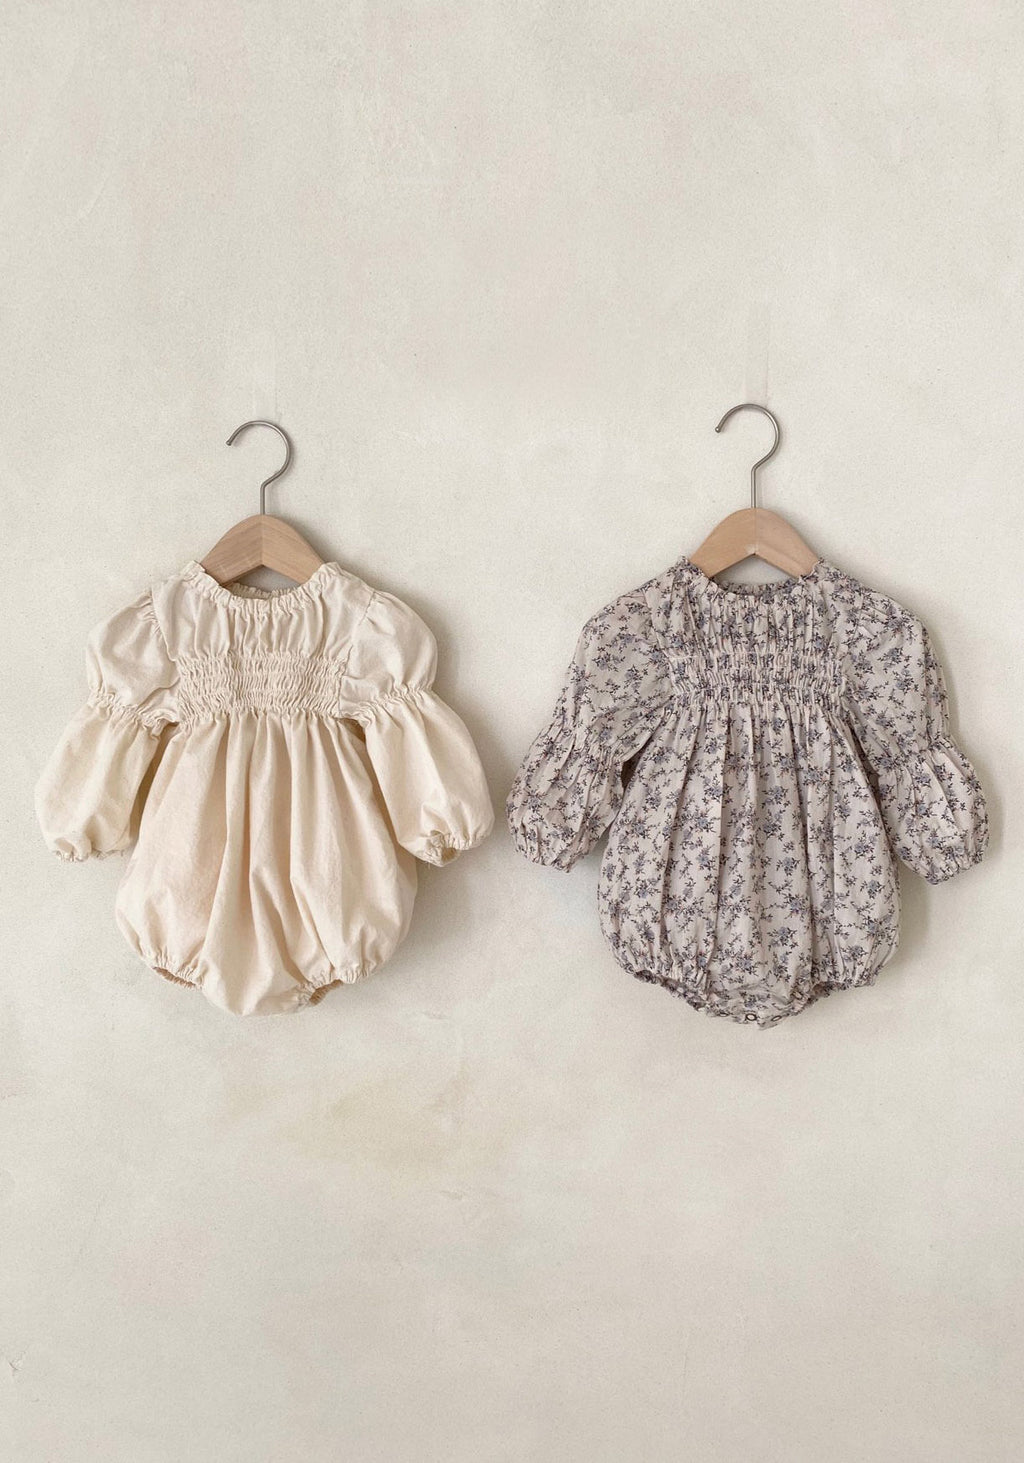 [MOMMY & ME] DAHLIA DRESS - BABY